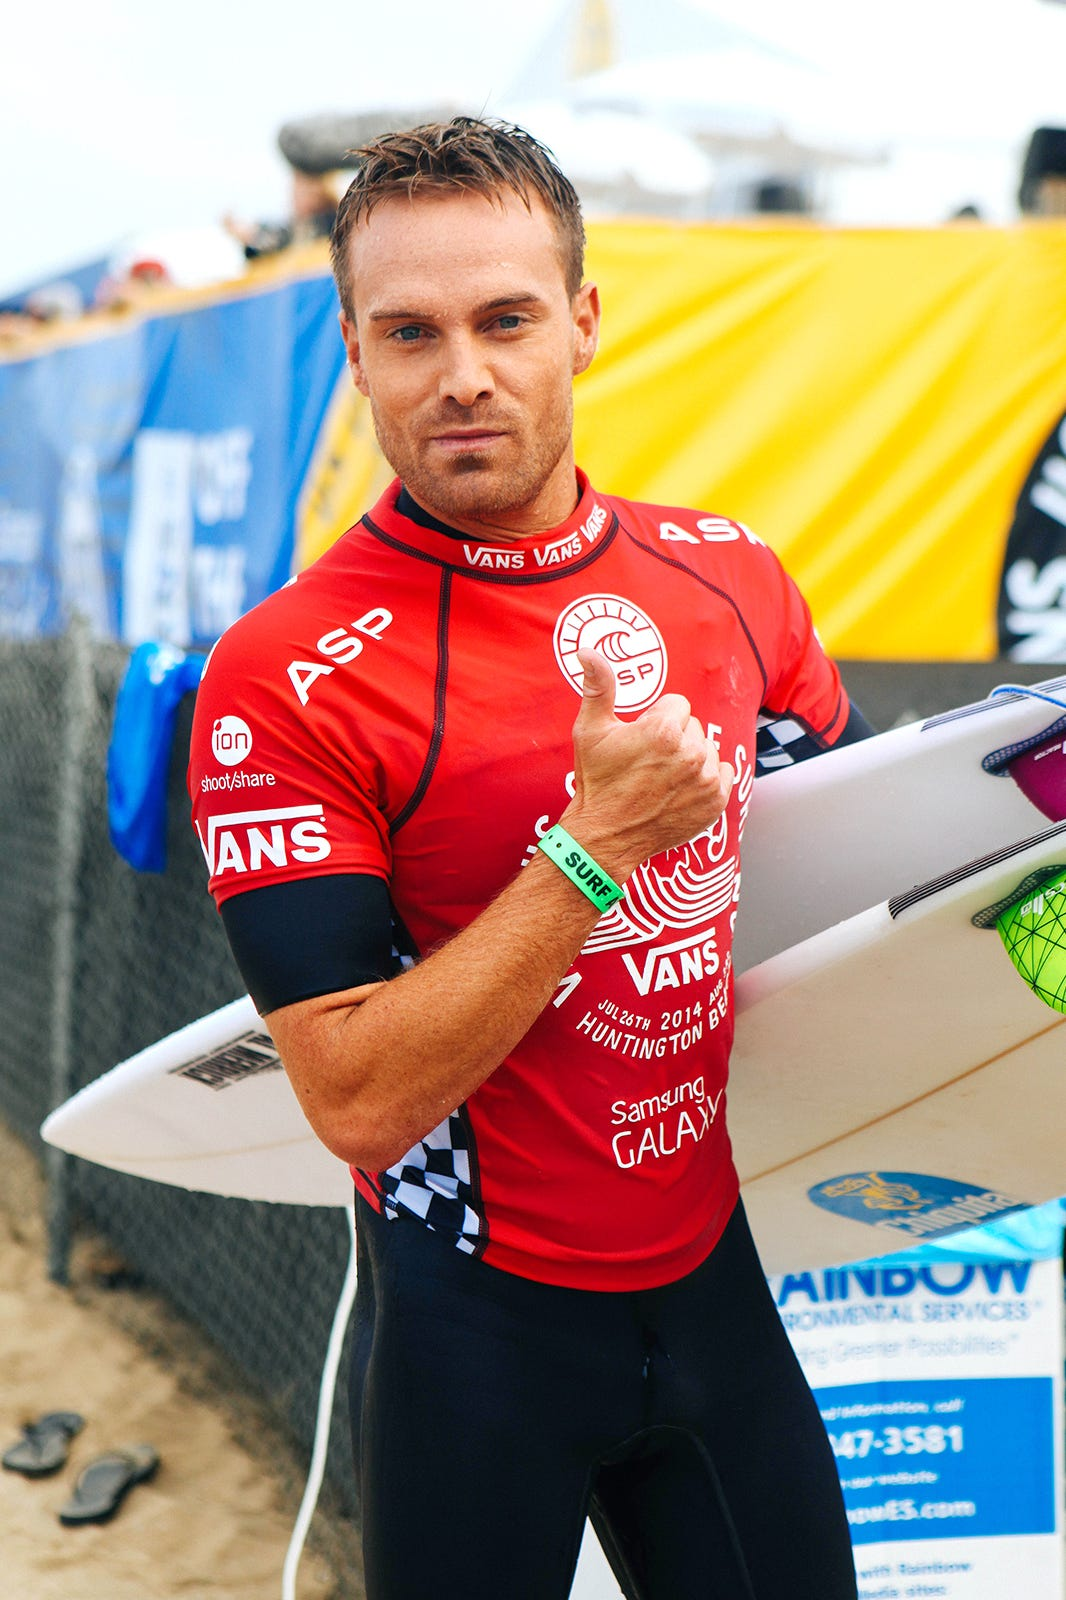 240a041ada Hottest Surfers - 2014 Vans US Open of Surfing